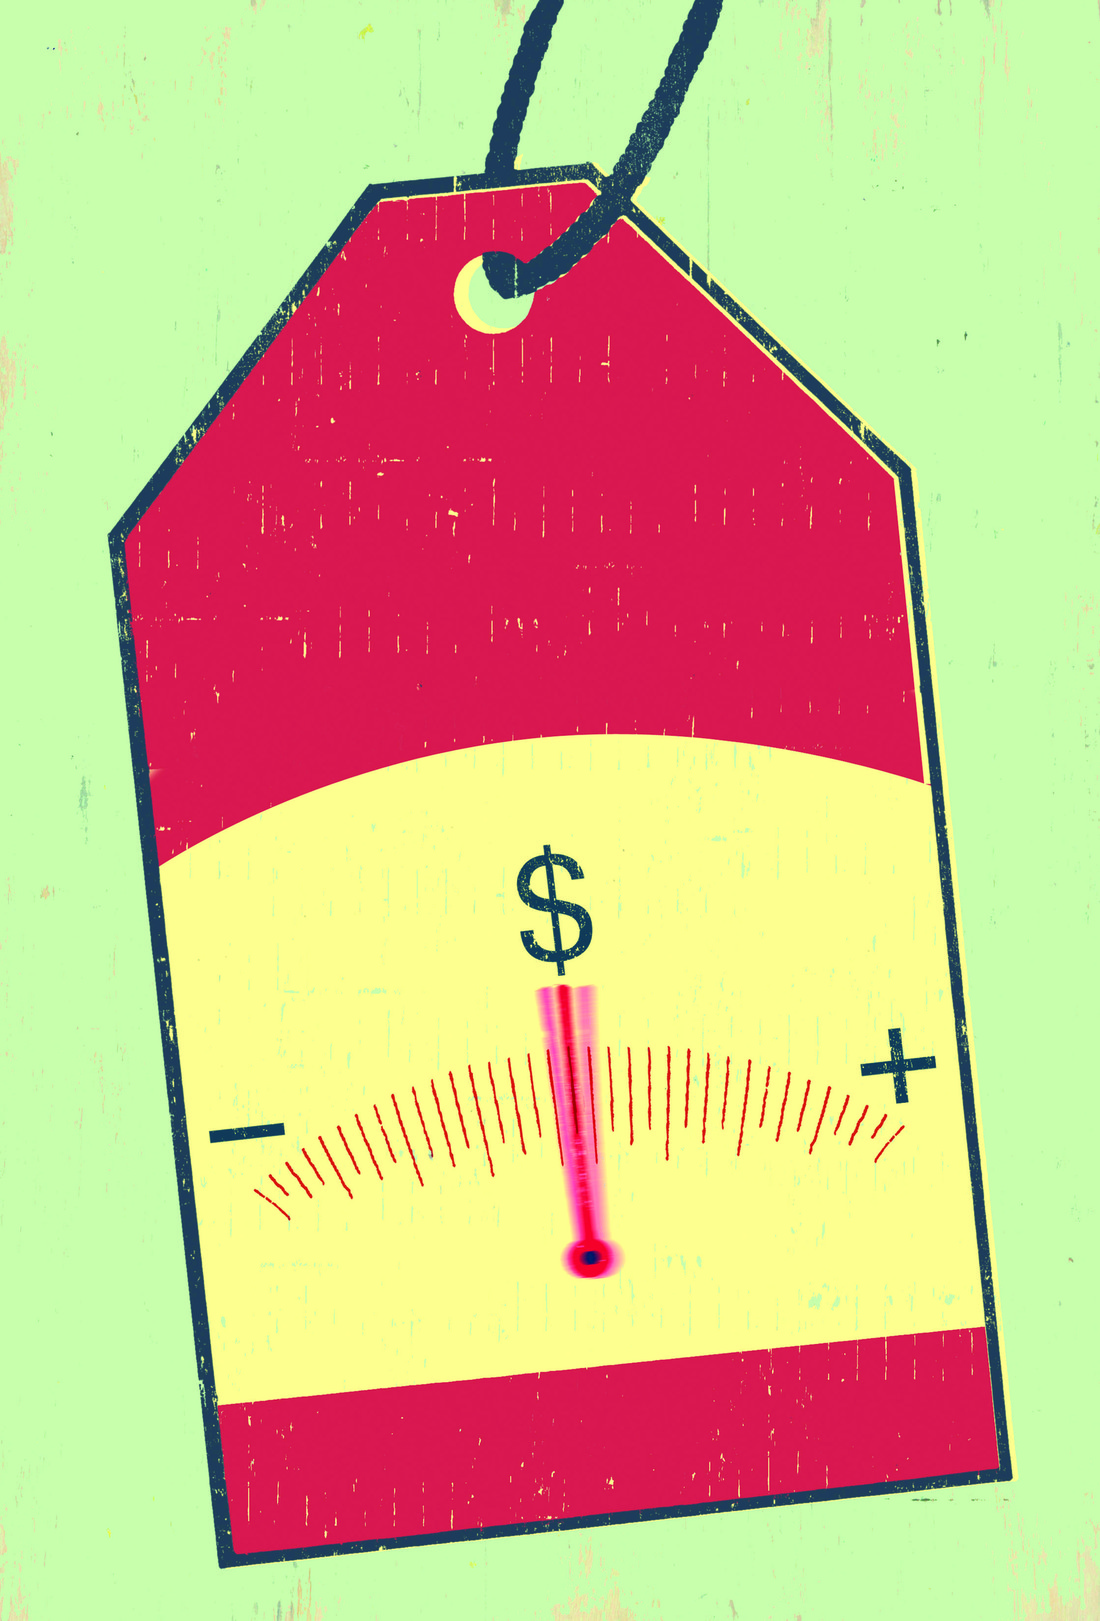 Image of a price tag with a plus and minus sign and a needle in the middle